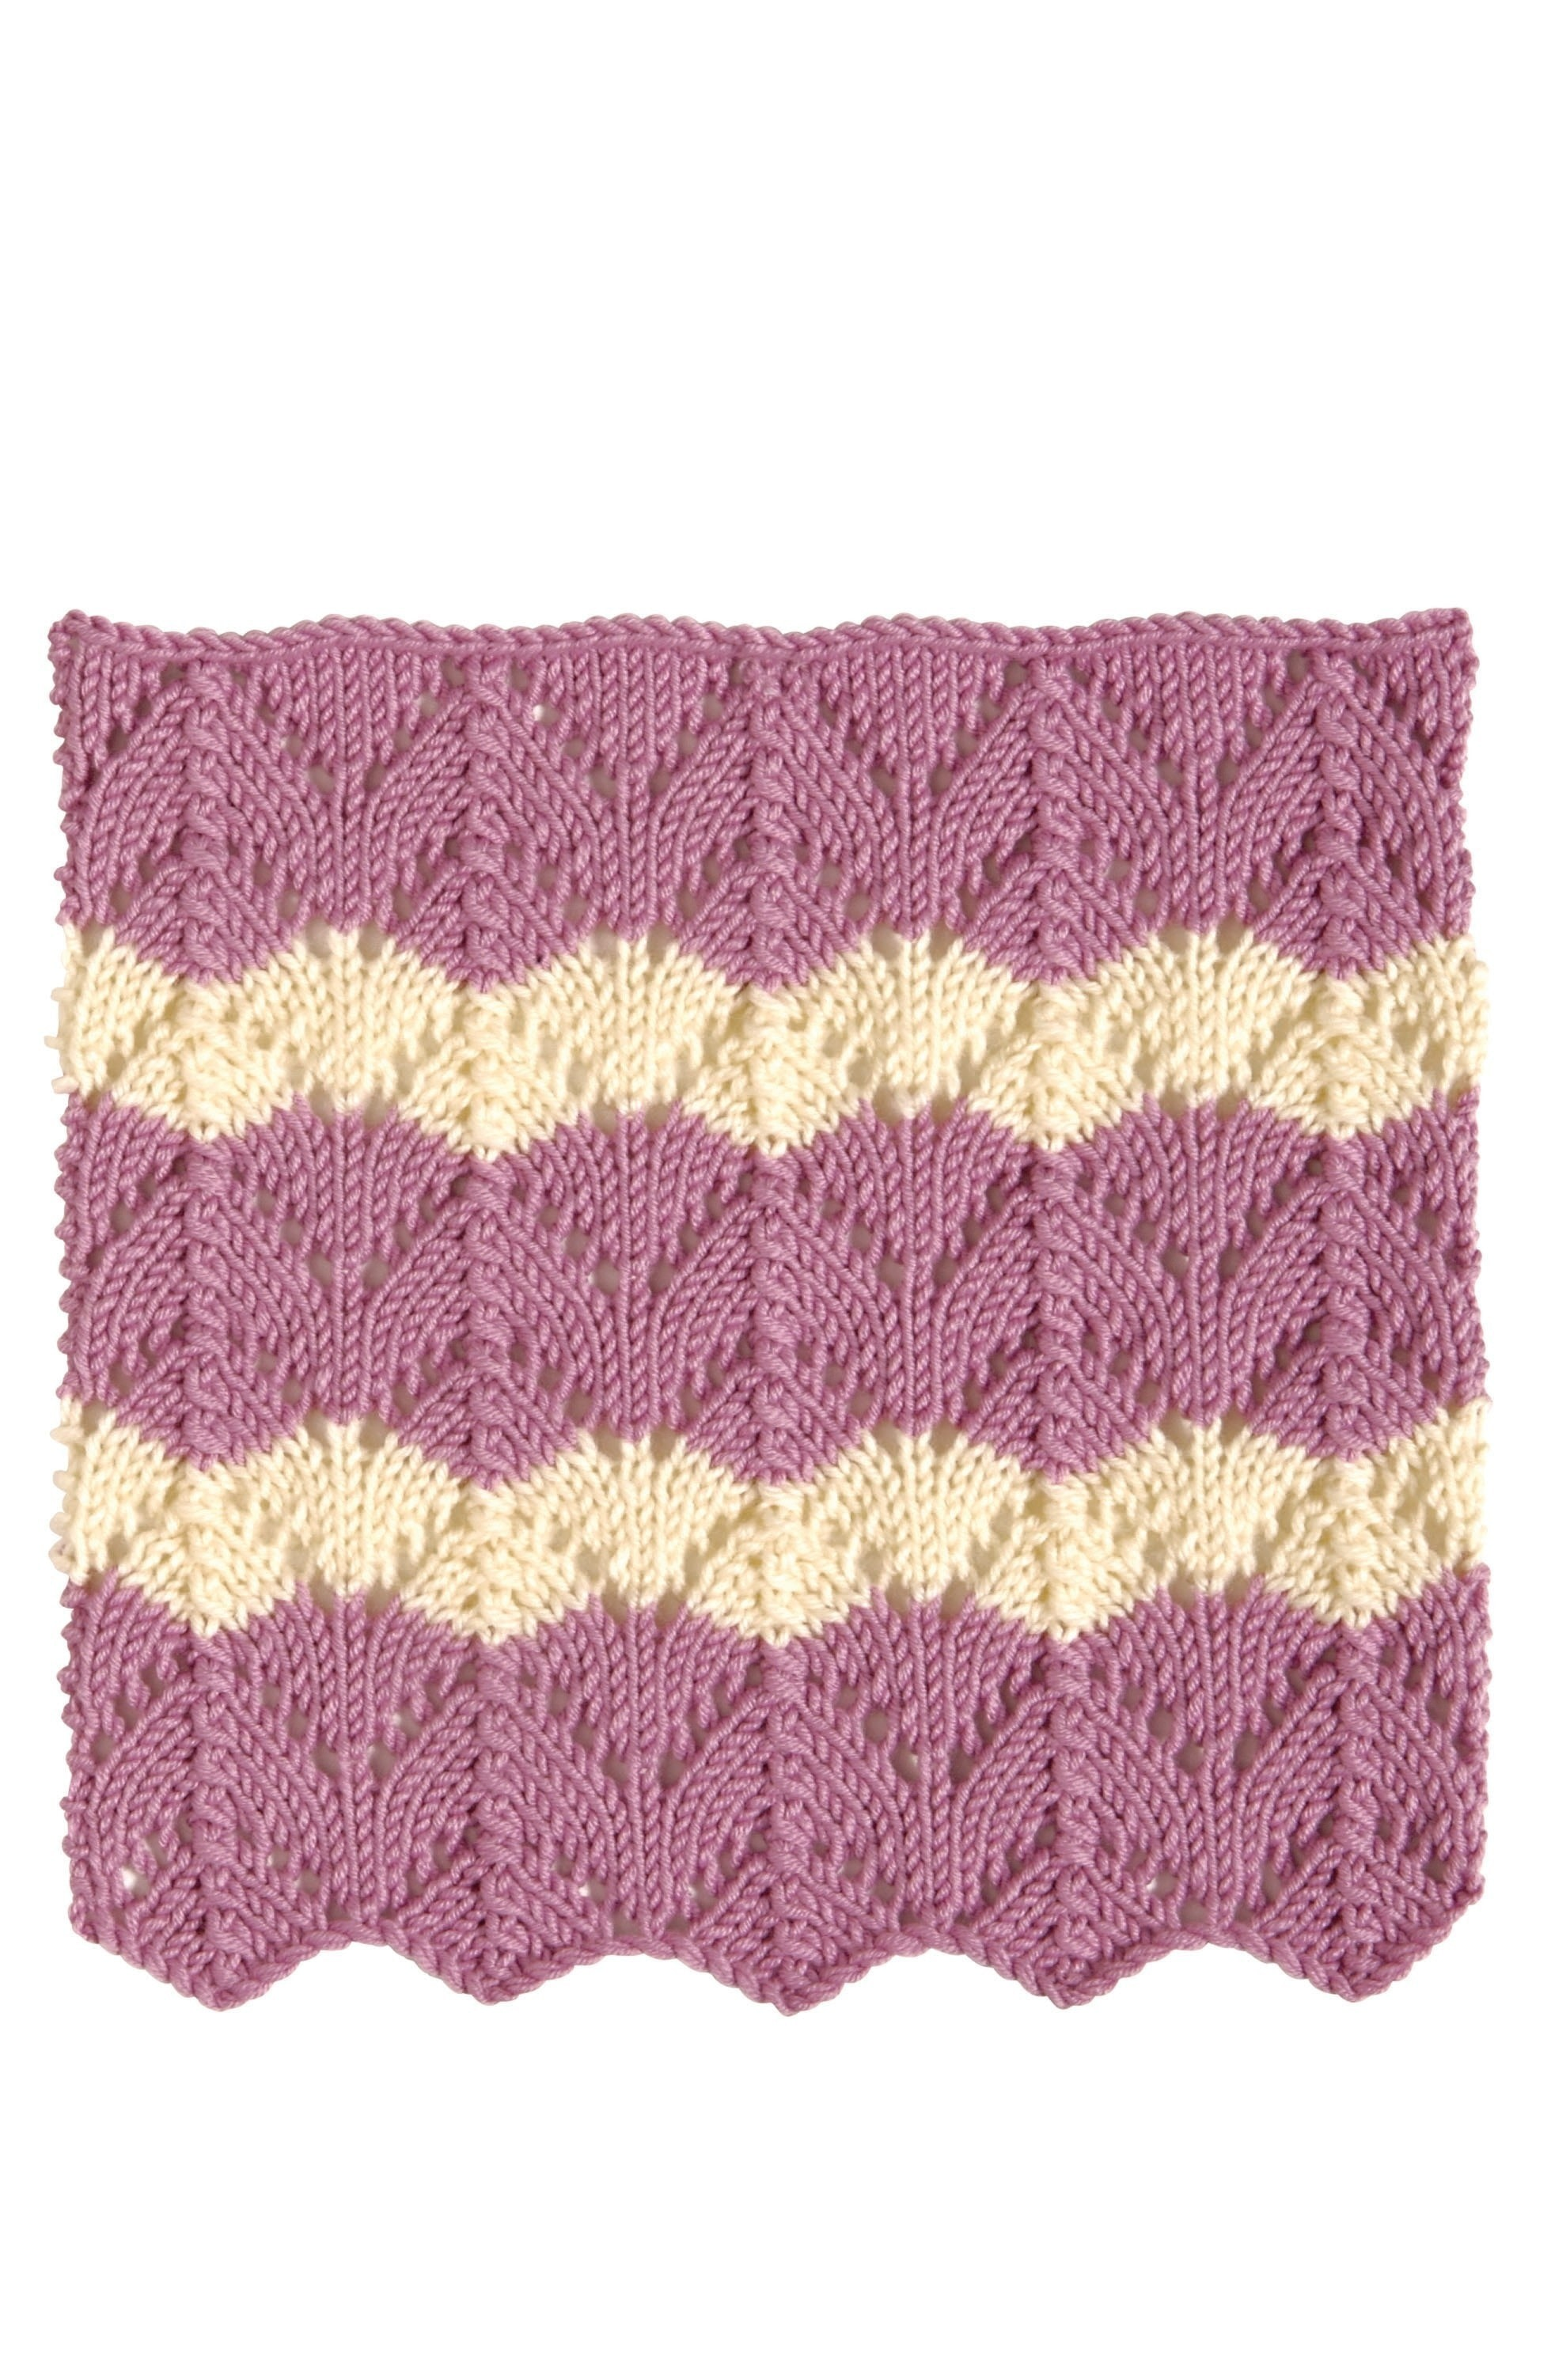 Fishtail Lace · Extract from 200 Ripple Stitch Patterns by Jan Eaton ...